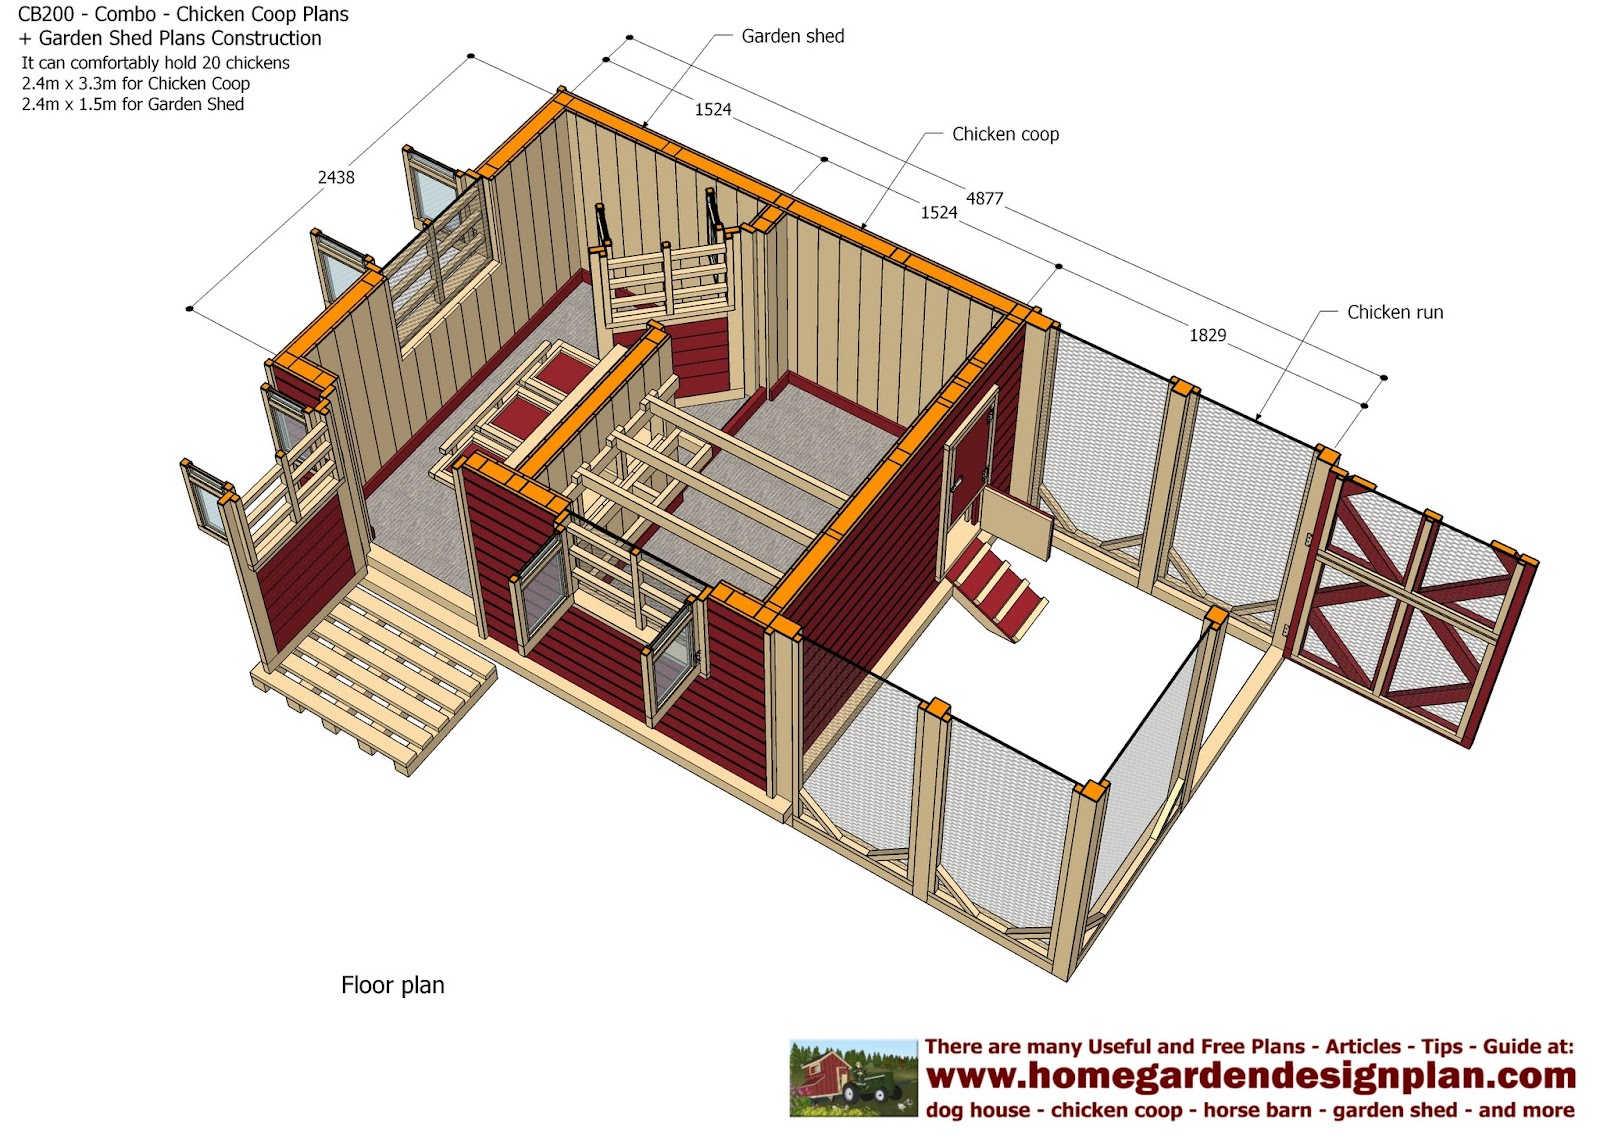 Home garden plans cb200 combo plans chicken coop for Poultry house plans for 100 chickens